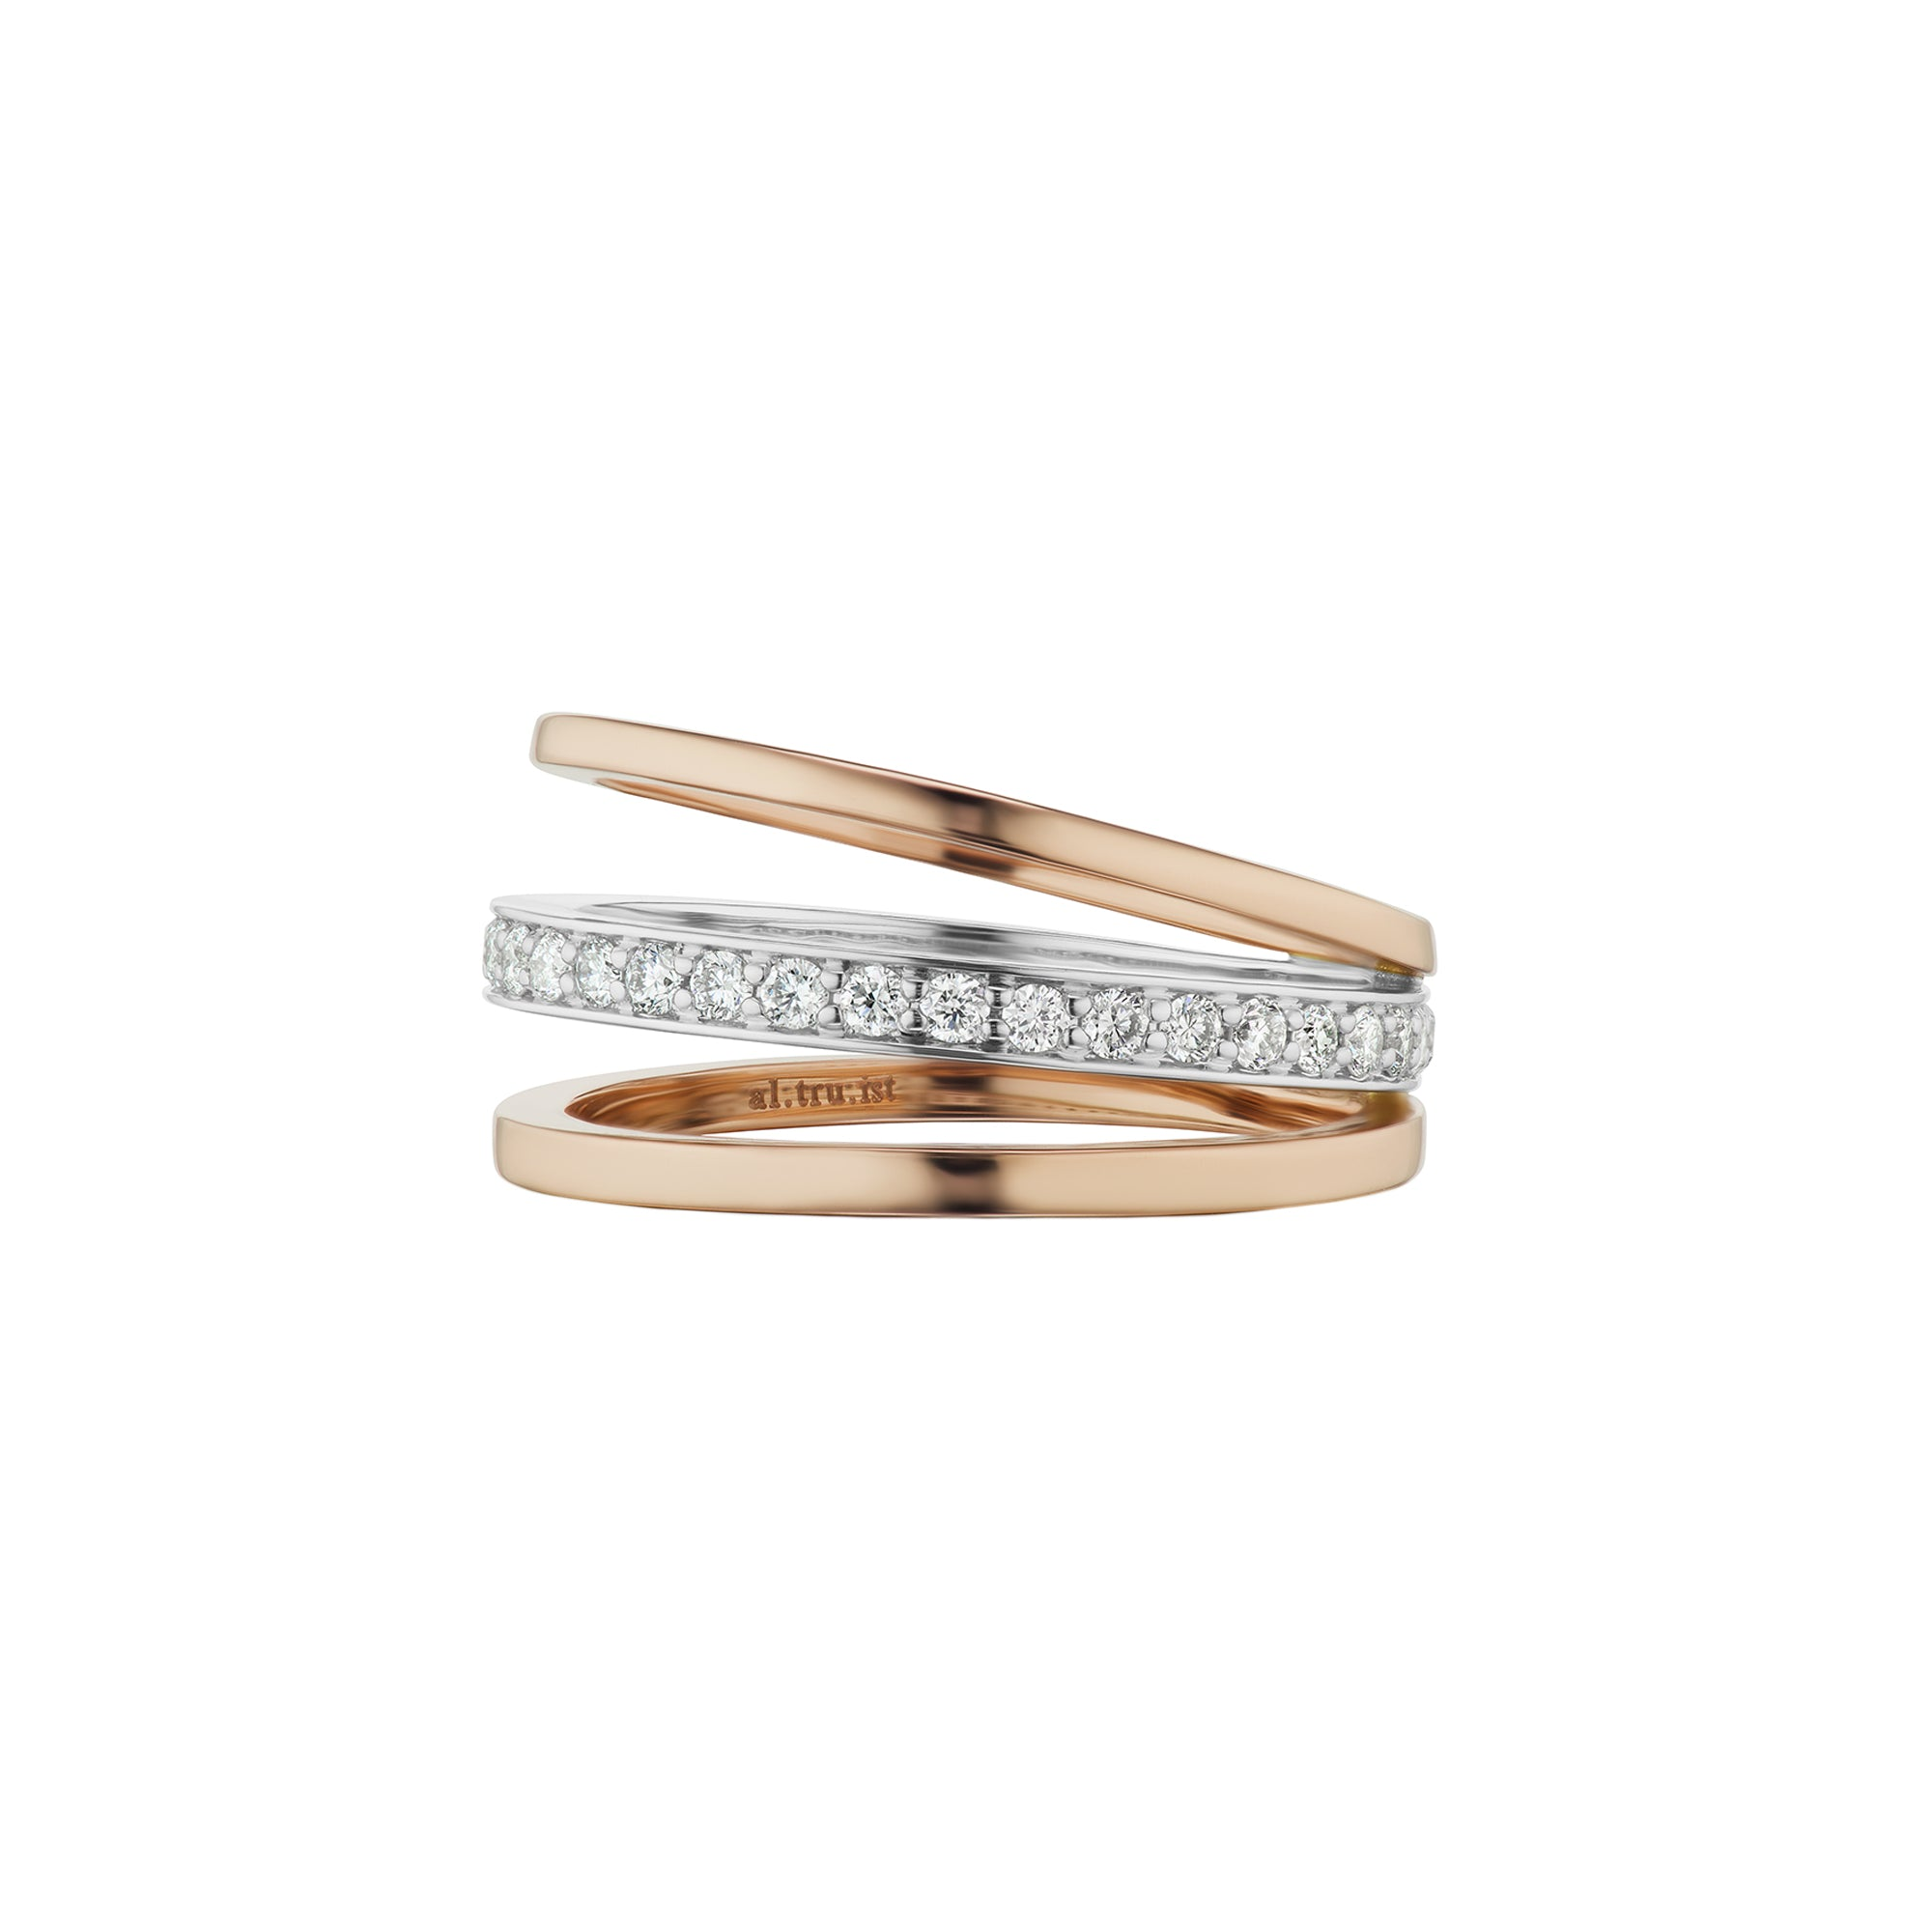 Altruist Espionne Ring III - Rose & White Gold - Rings - Broken English Jewelry